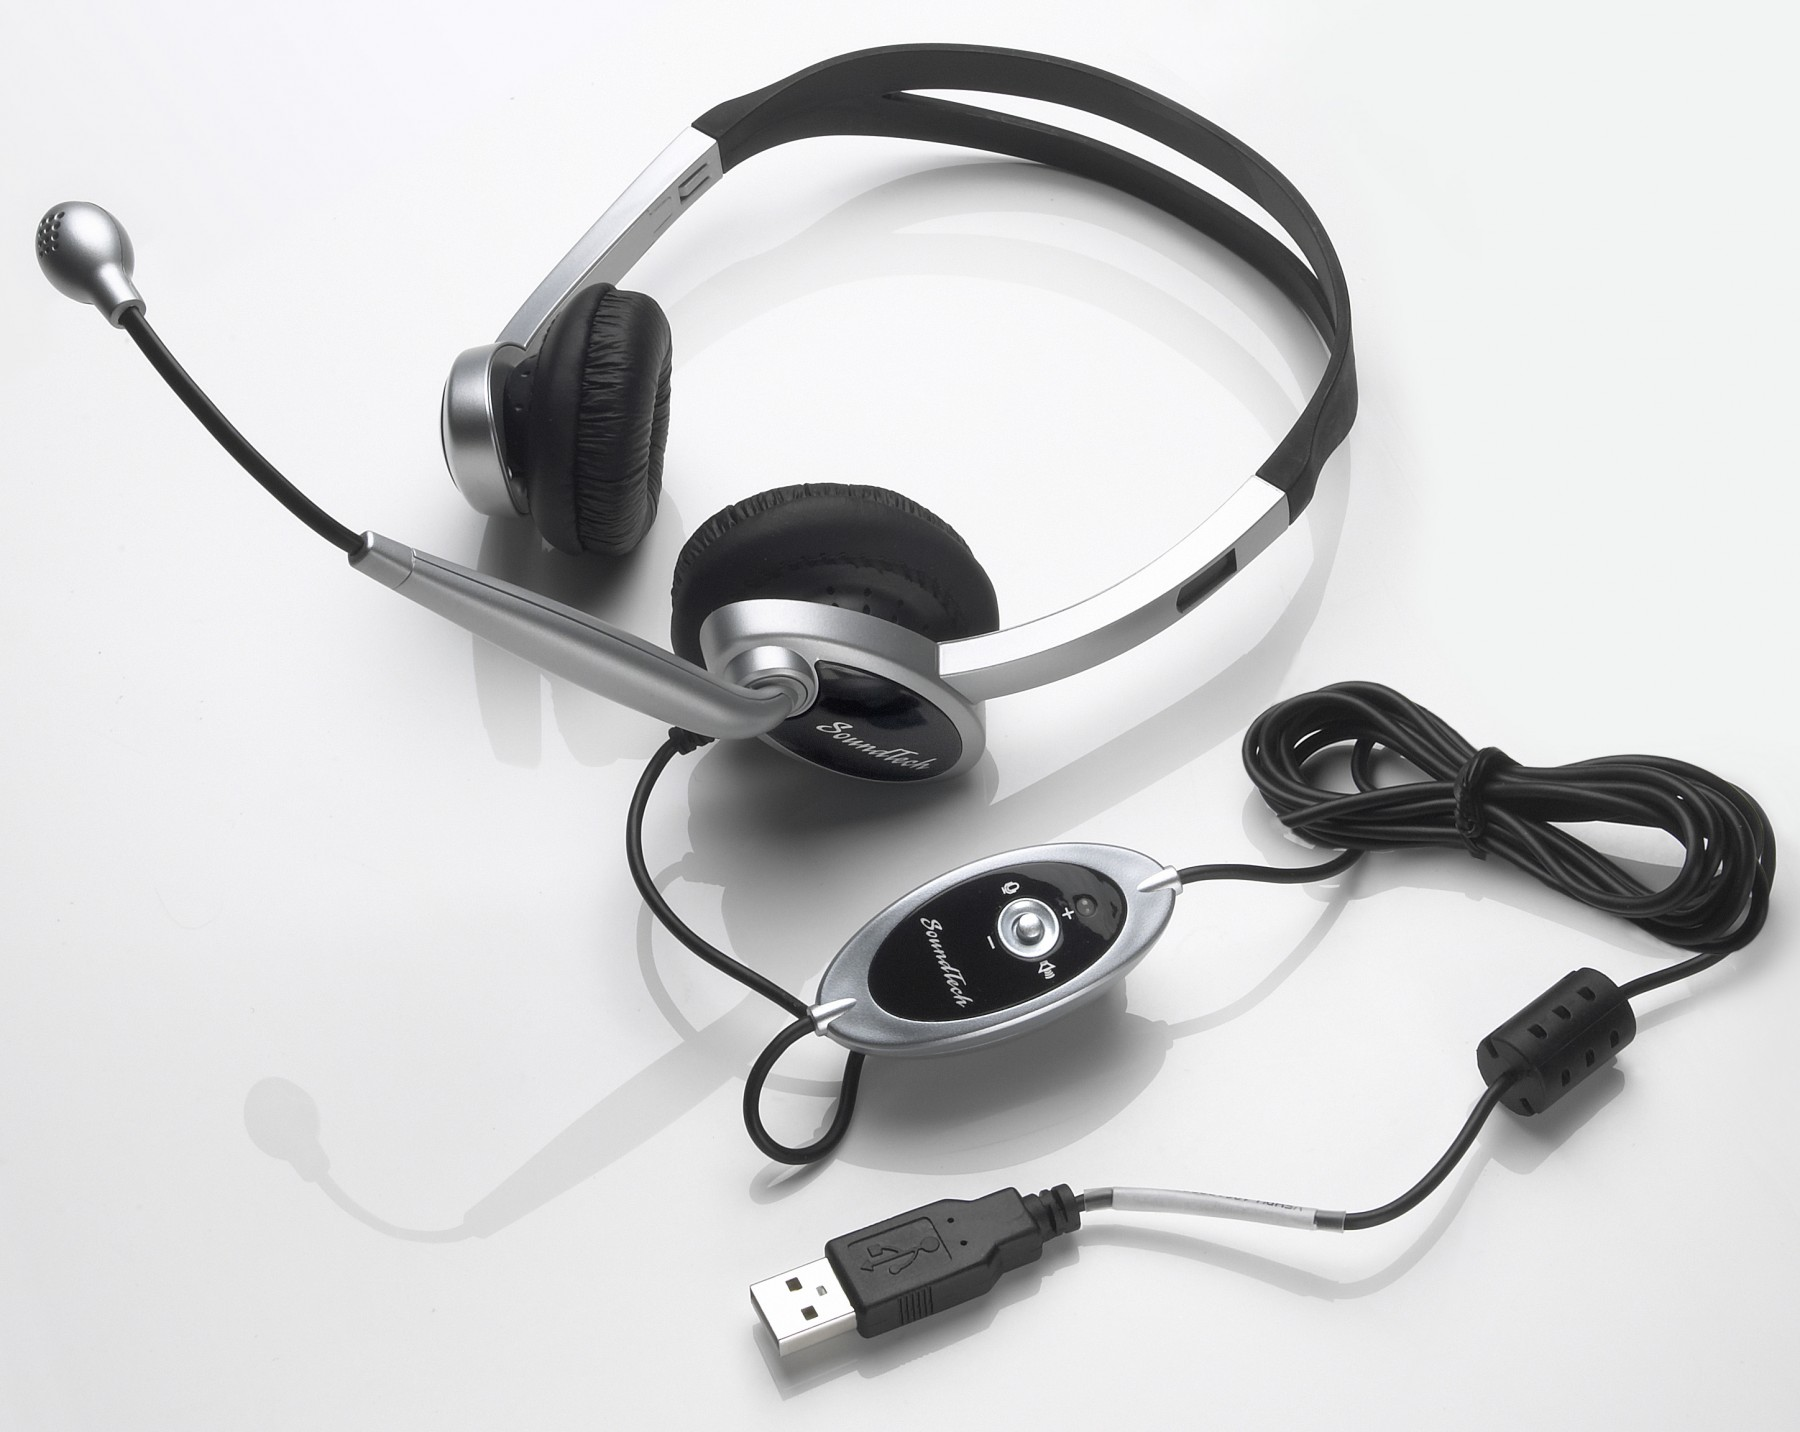 noise canceling headset mic with volume and mute control. Black Bedroom Furniture Sets. Home Design Ideas